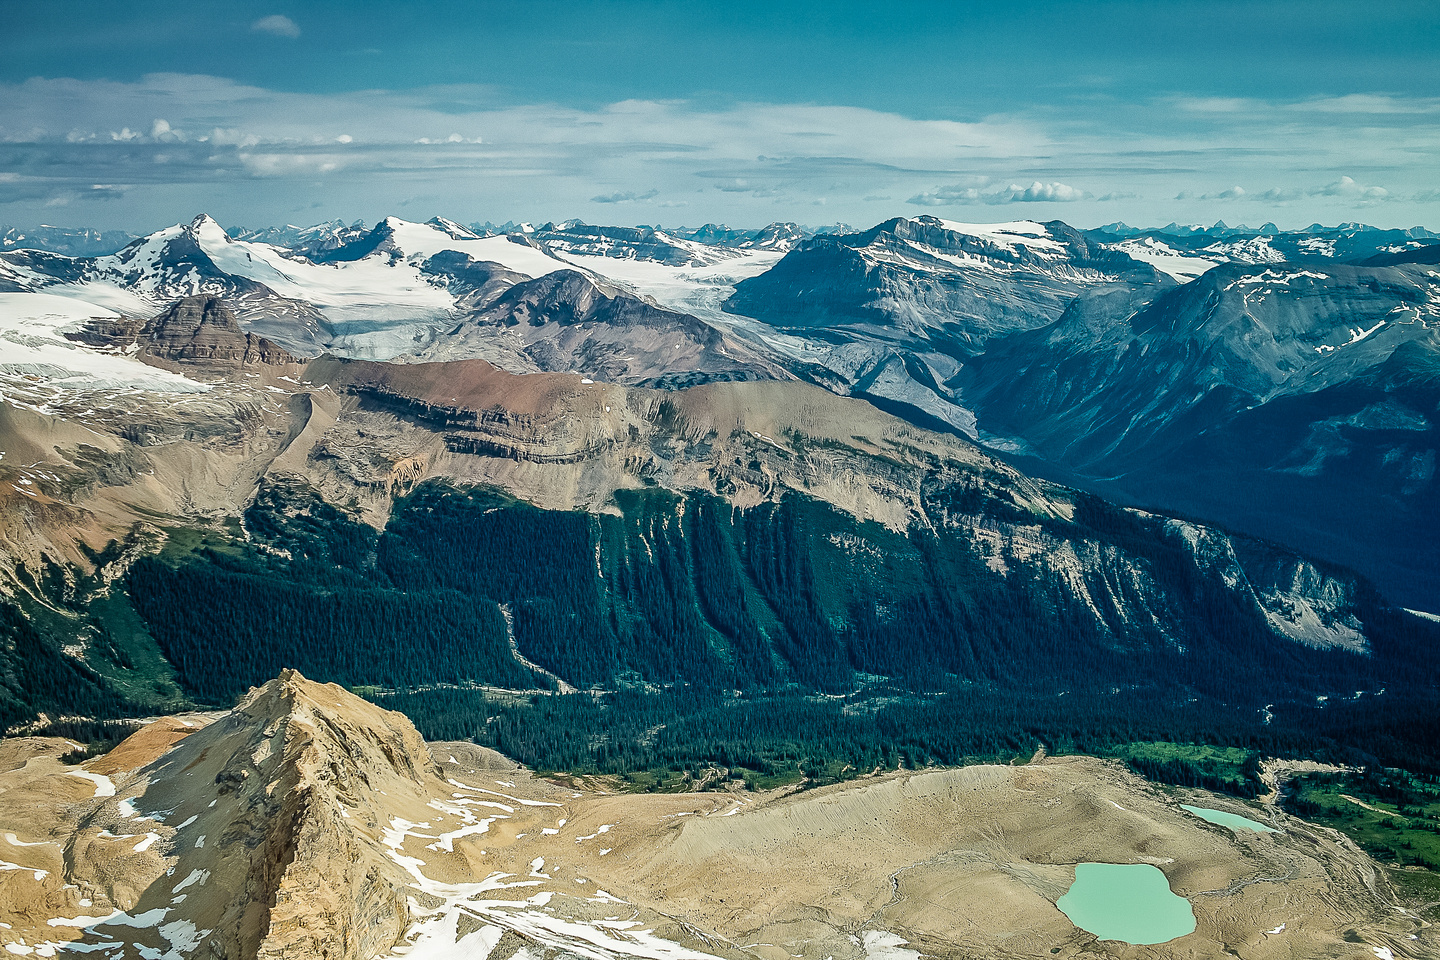 More stunning views over the Little Yoho Valley.